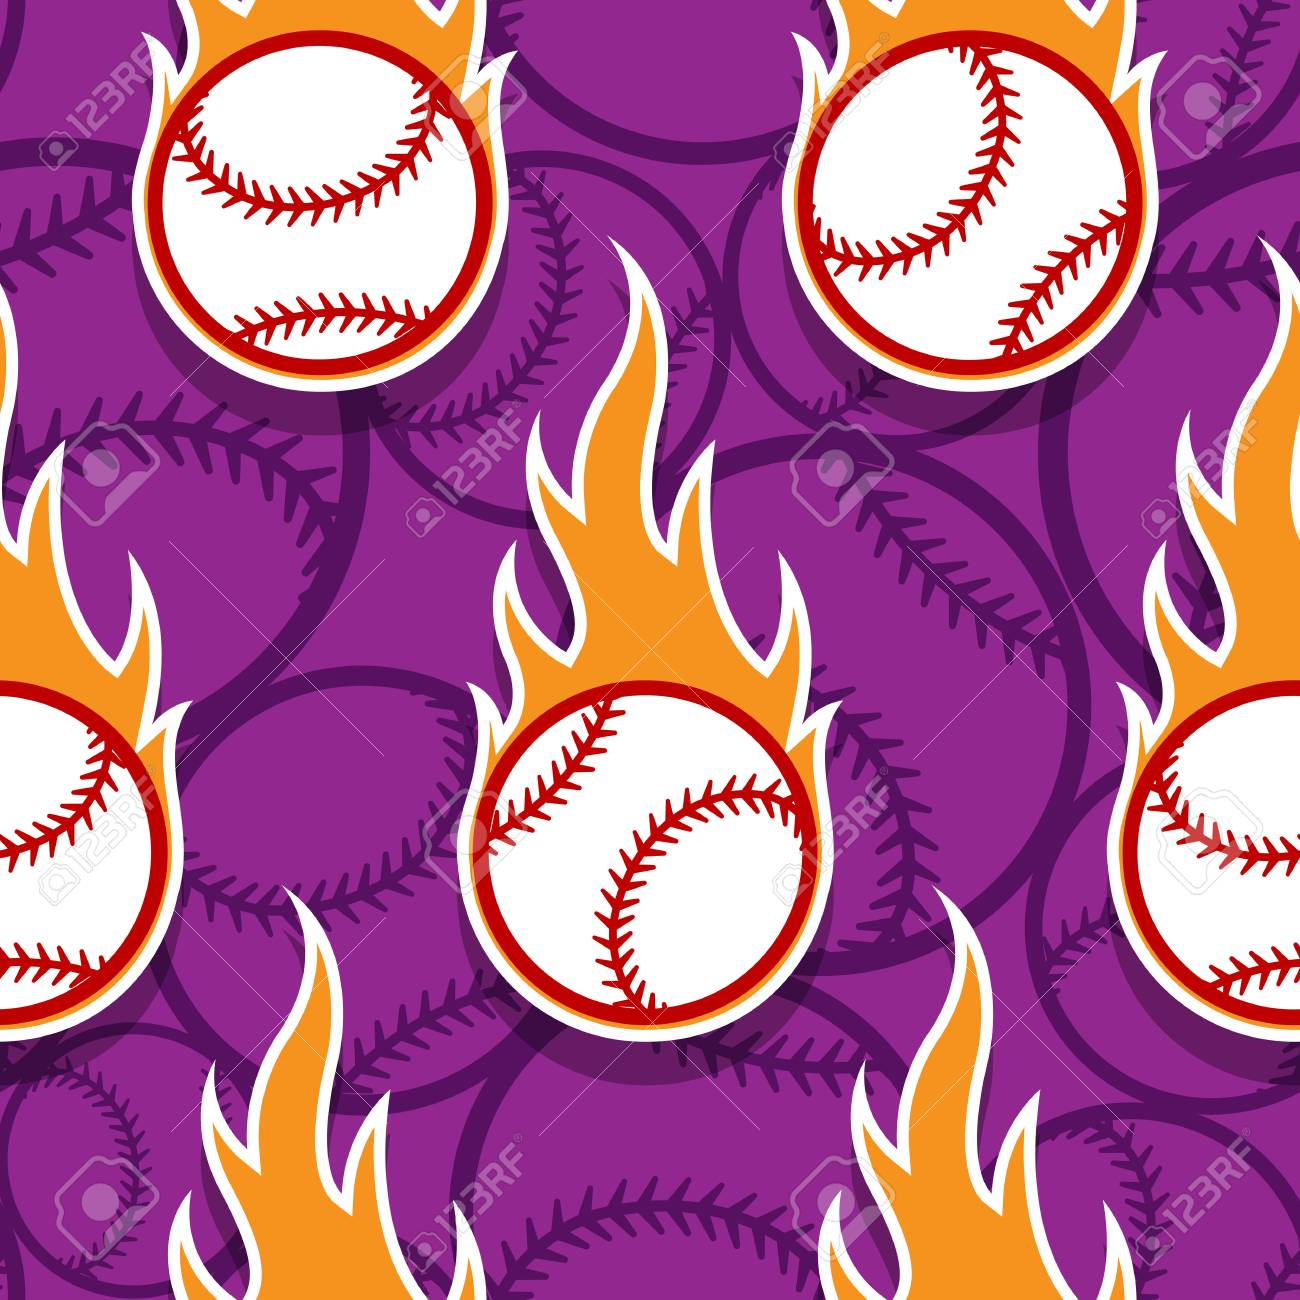 Seamless Pattern With Baseball Ball Icons And Flames Vector Royalty Free Cliparts Vectors And Stock Illustration Image 112339943